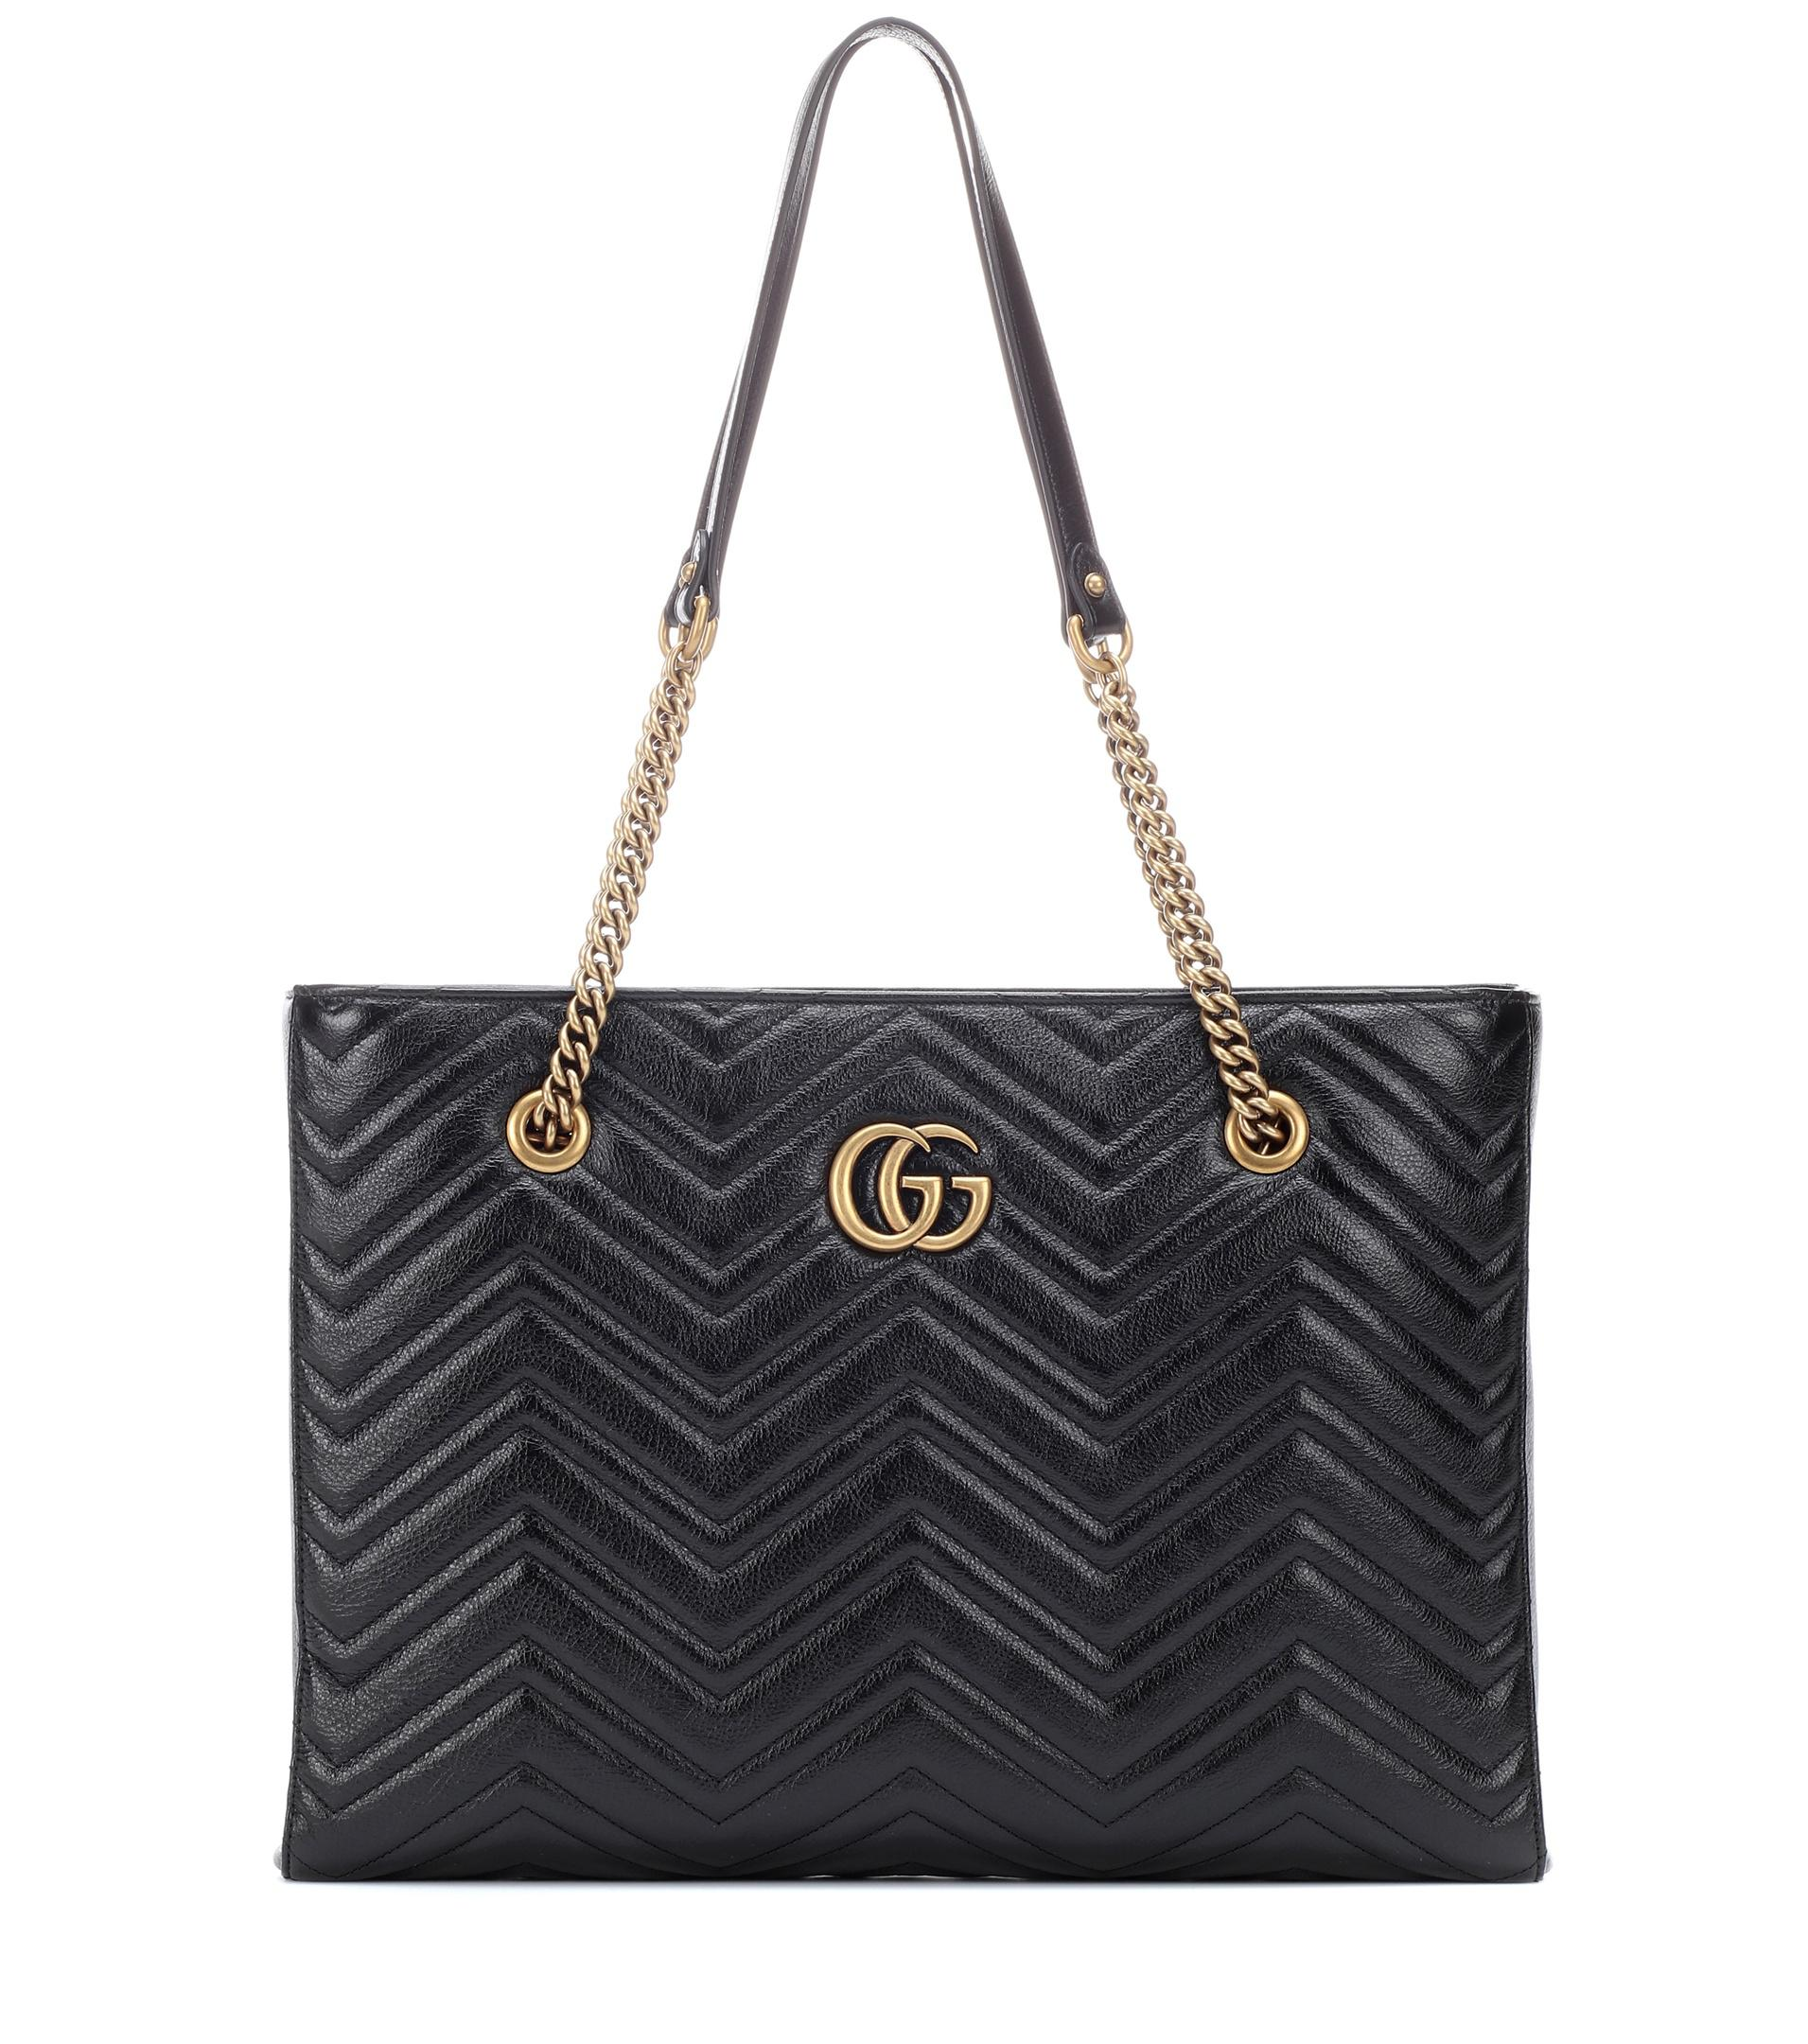 5296b092639 Gucci Gg Marmont Medium Leather Tote in Black - Lyst